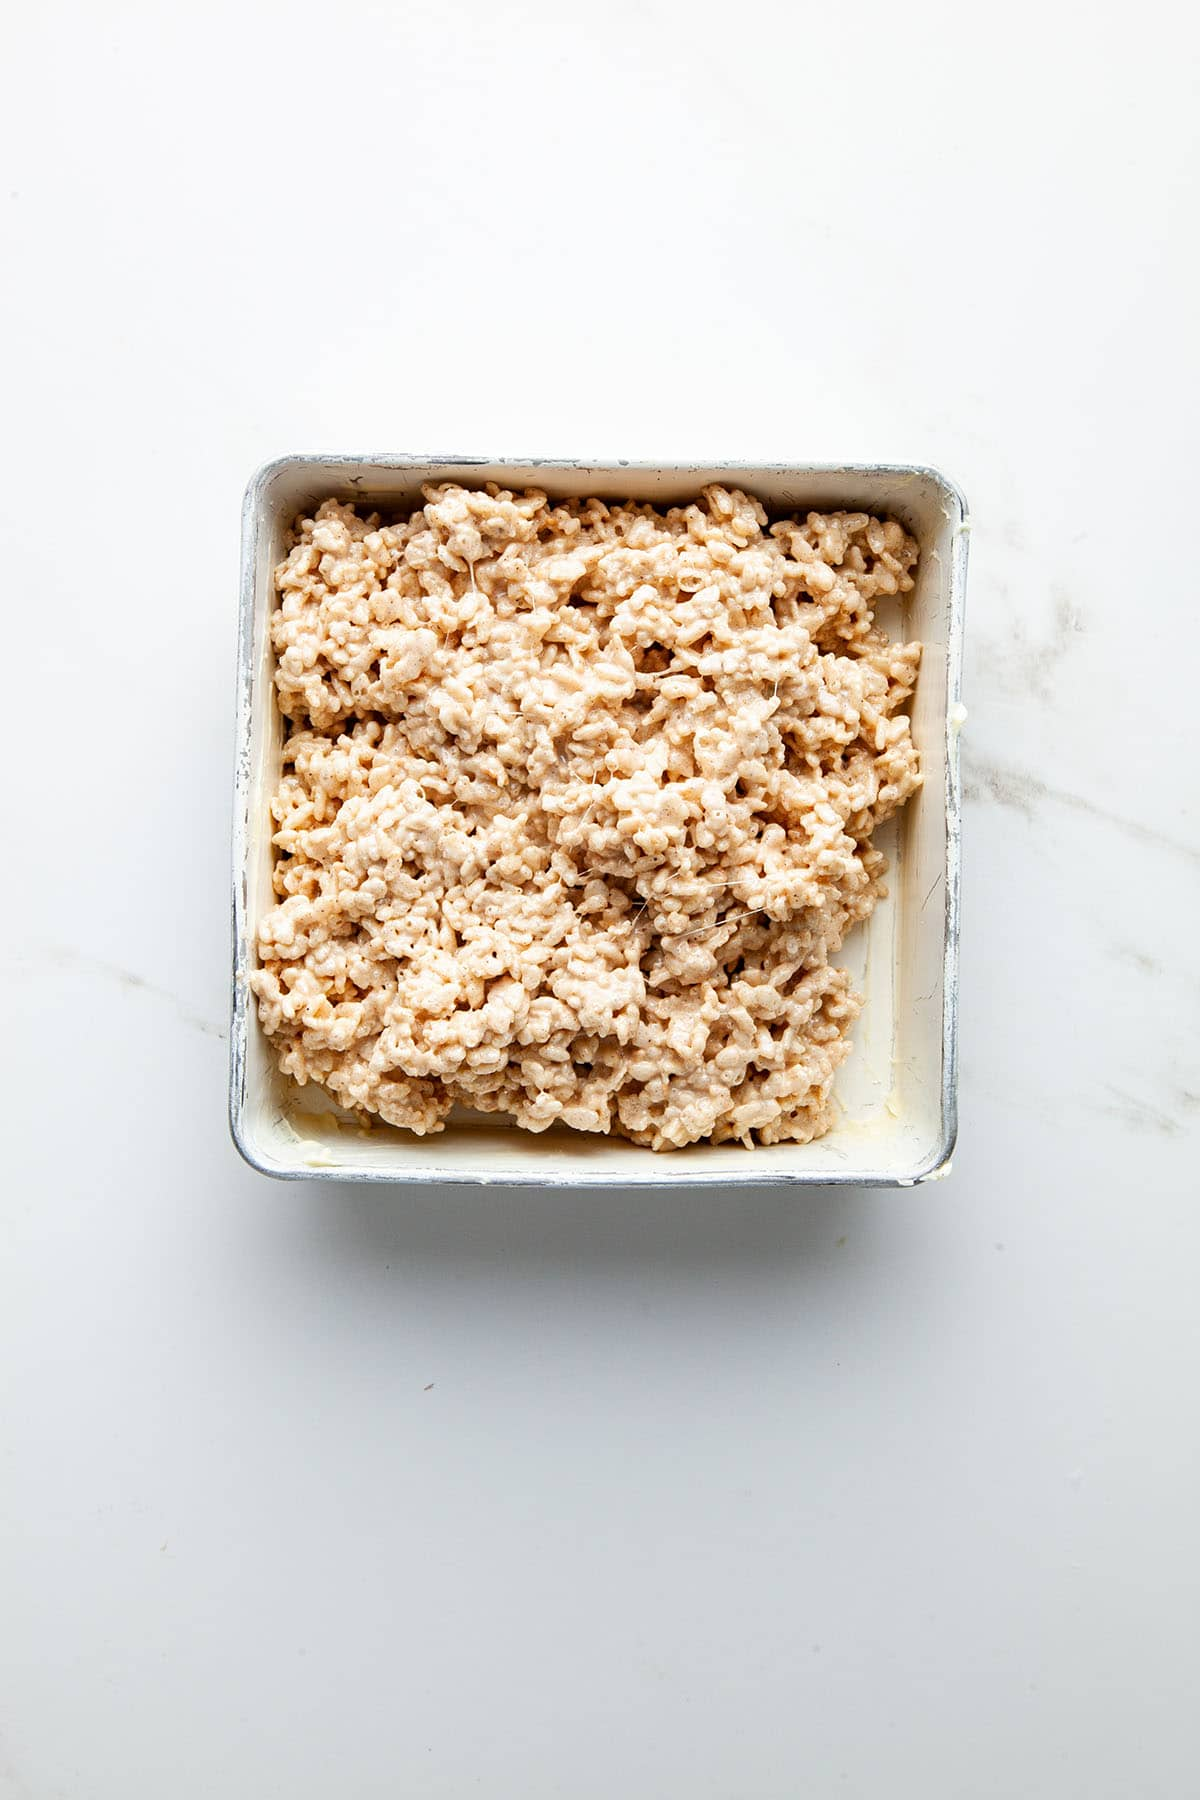 A pan of Rice Krispie treats before smoothing.